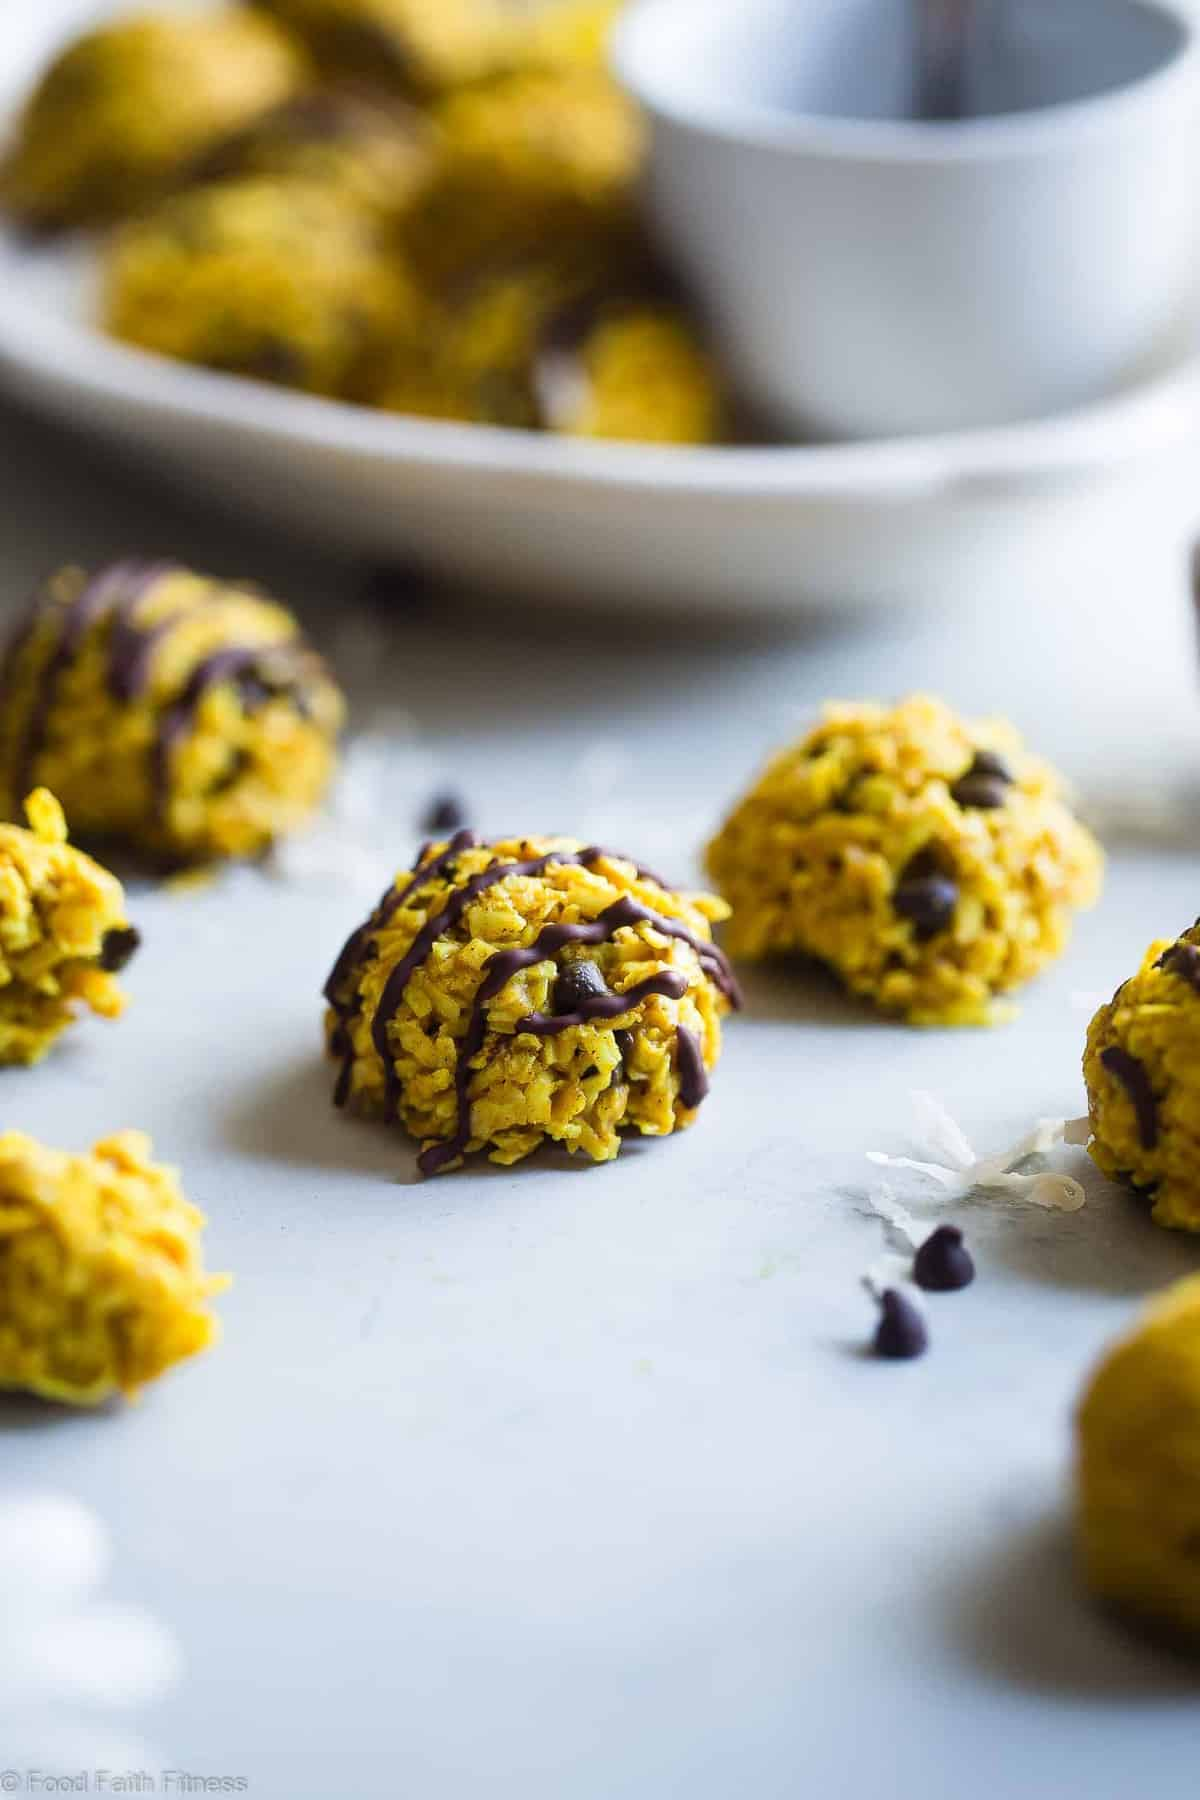 Healthy No Bake Cookies with Coconut Oil - These easy, 6 ingredient cookieshave addicting spicy-sweet flavors from turmeric, almond butter and chocolate chips! They're a paleo, vegan and gluten free treat that is secretly anti-inflammatory! | #Foodfaithfitness | #Paleo #Vegan #Glutenfree #Dairyfree #Healthy